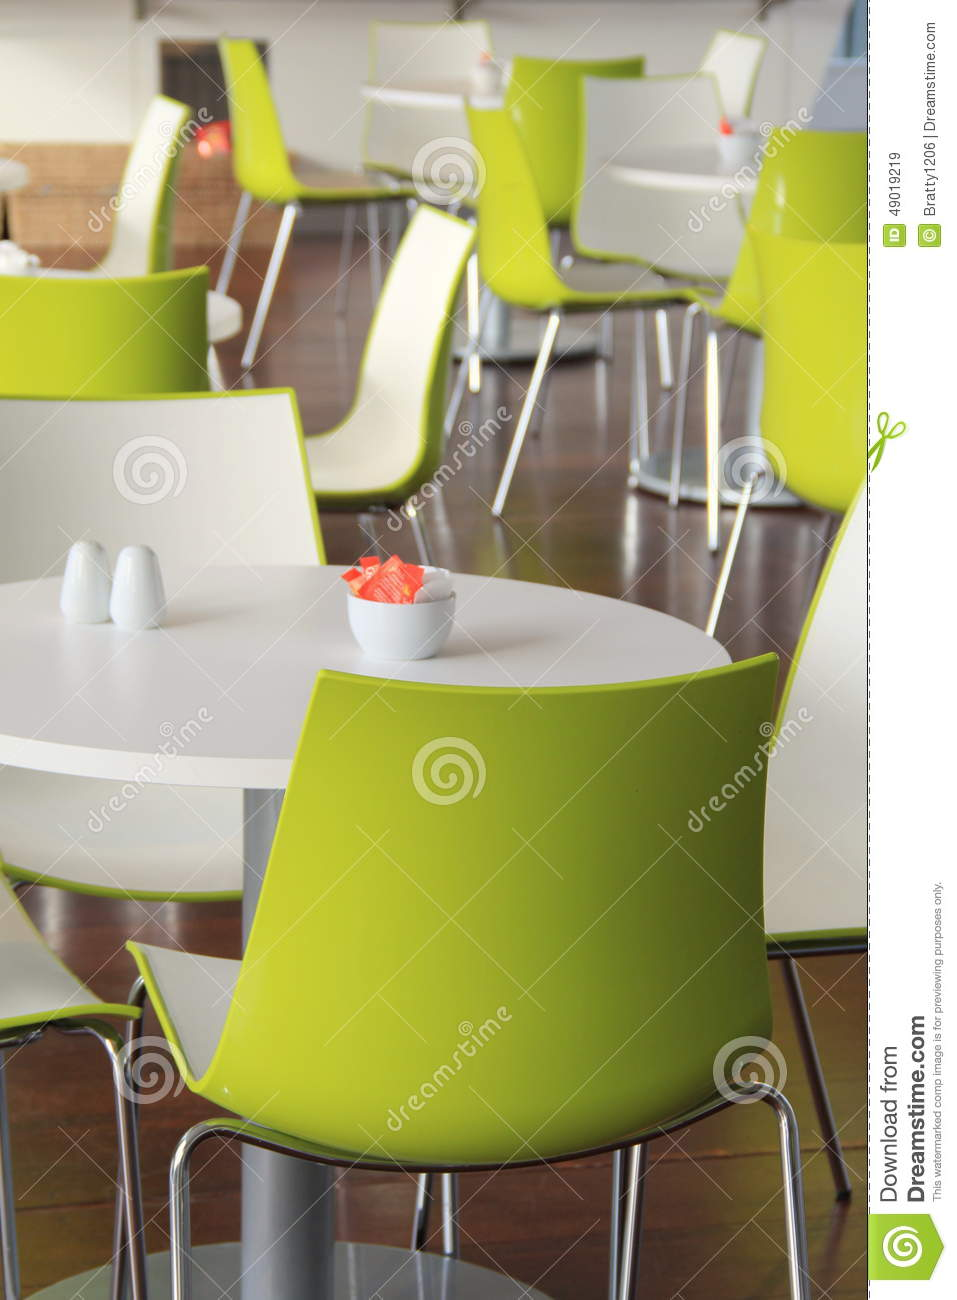 Modern restaurant table setting - Modern Setting Of Bright Green Chairs And Tables At Restaurant